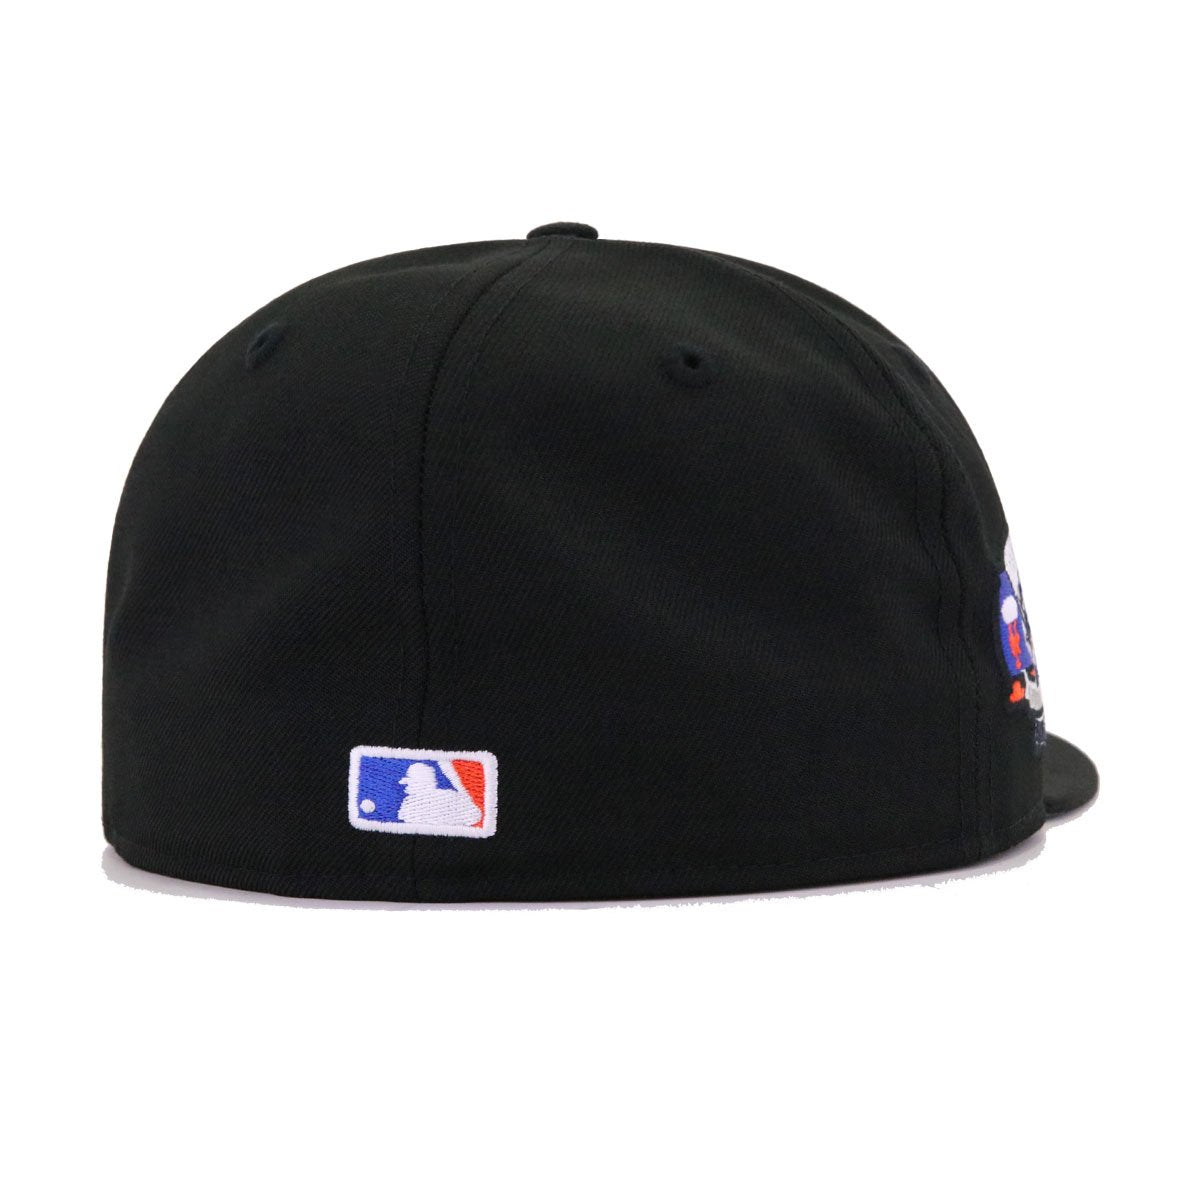 New York Mets Black New Subway Series New Era 59Fifty Fitted